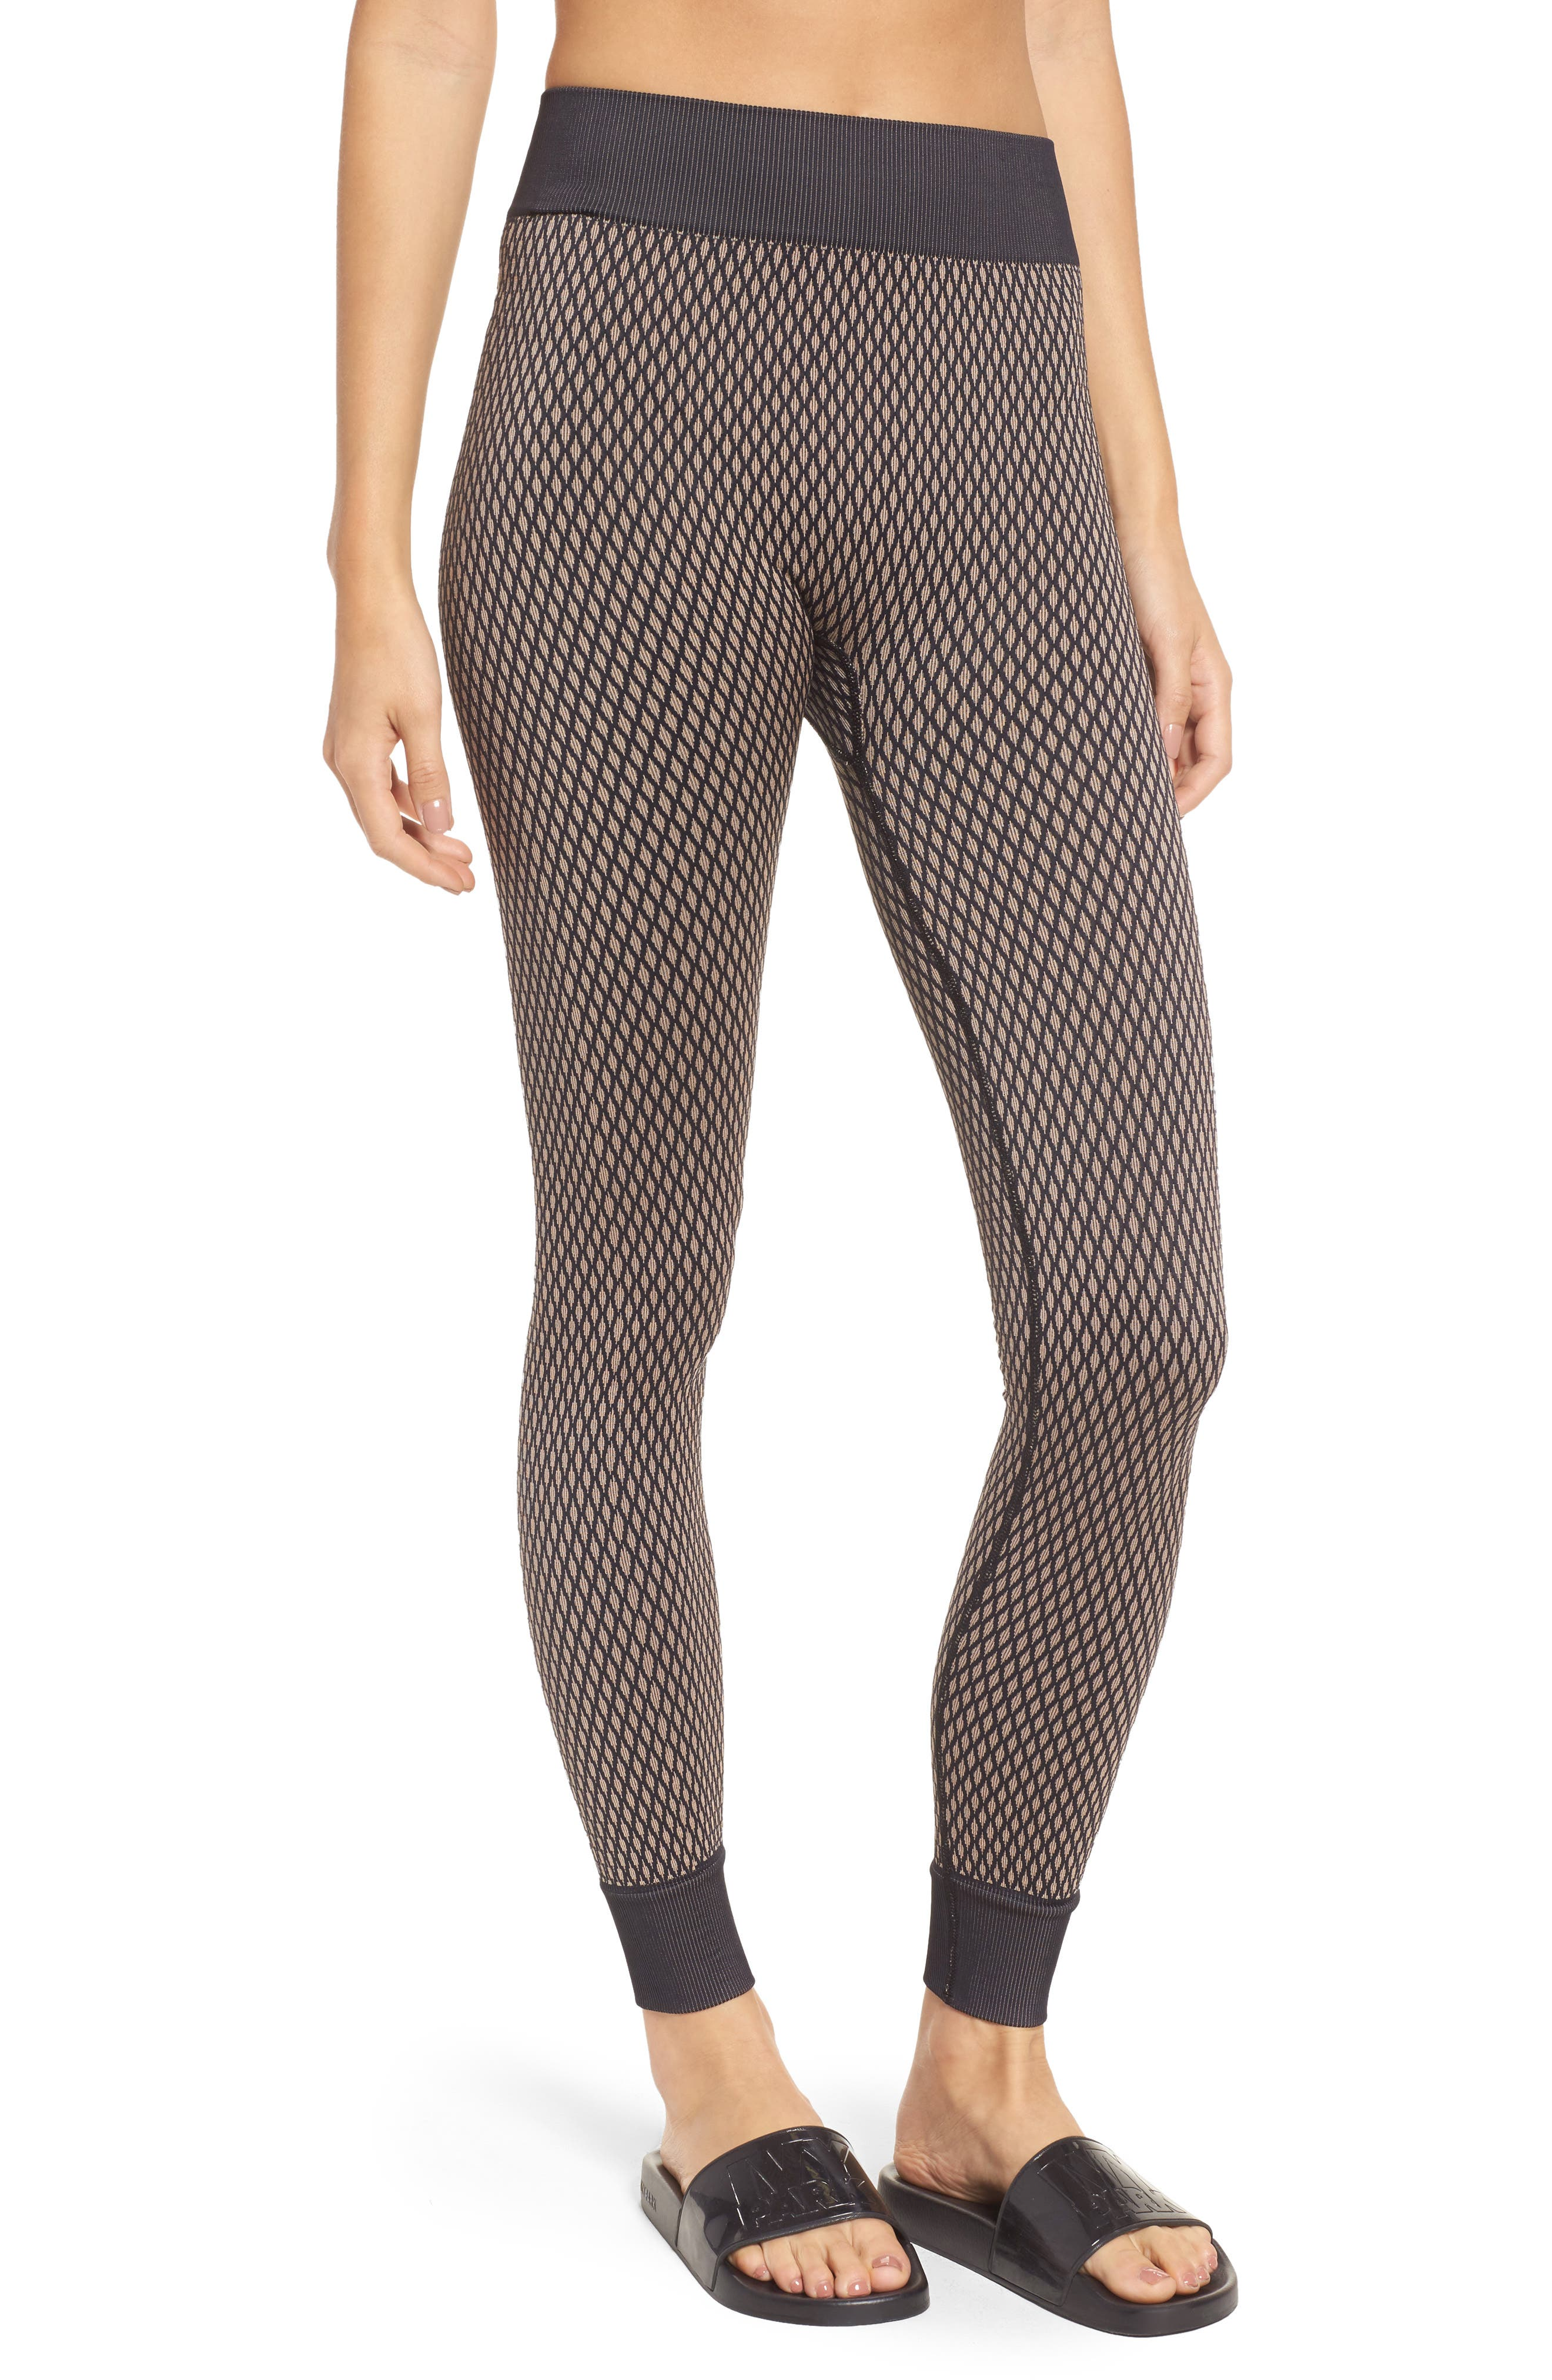 Fishnet Seamless Leggings,                         Main,                         color, 001